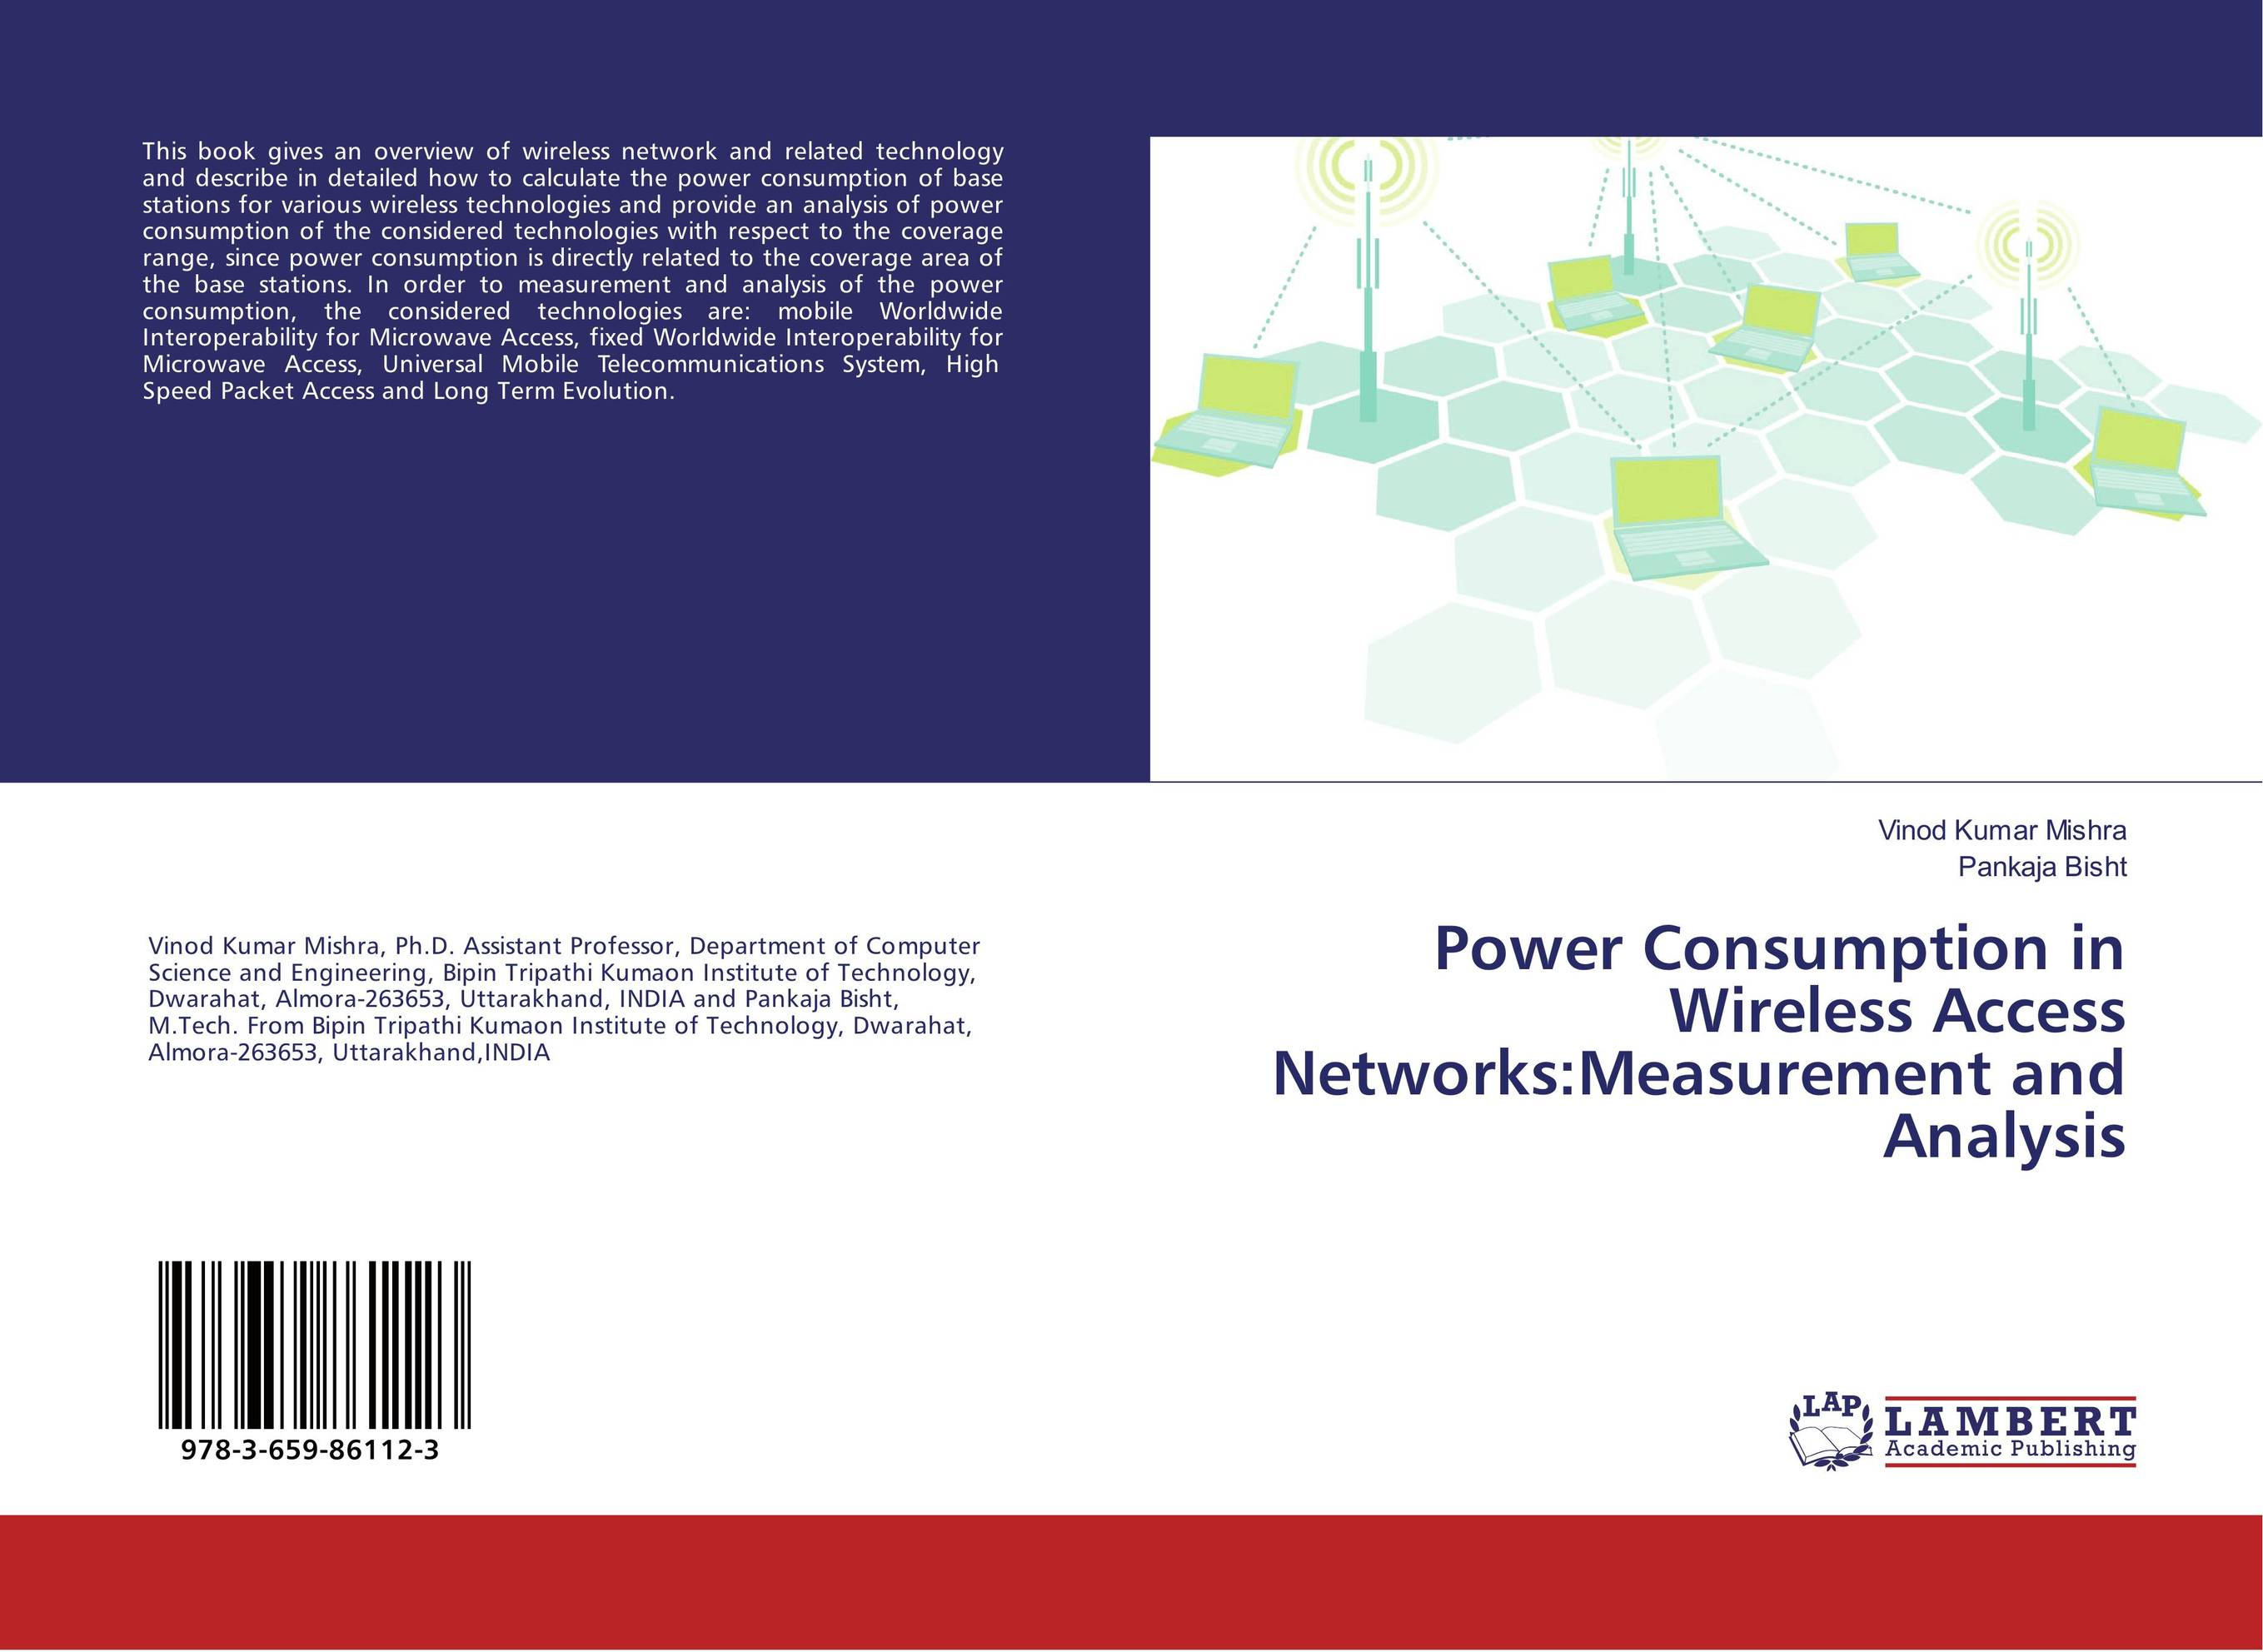 Power Consumption in Wireless Access Networks:Measurement and Analysis